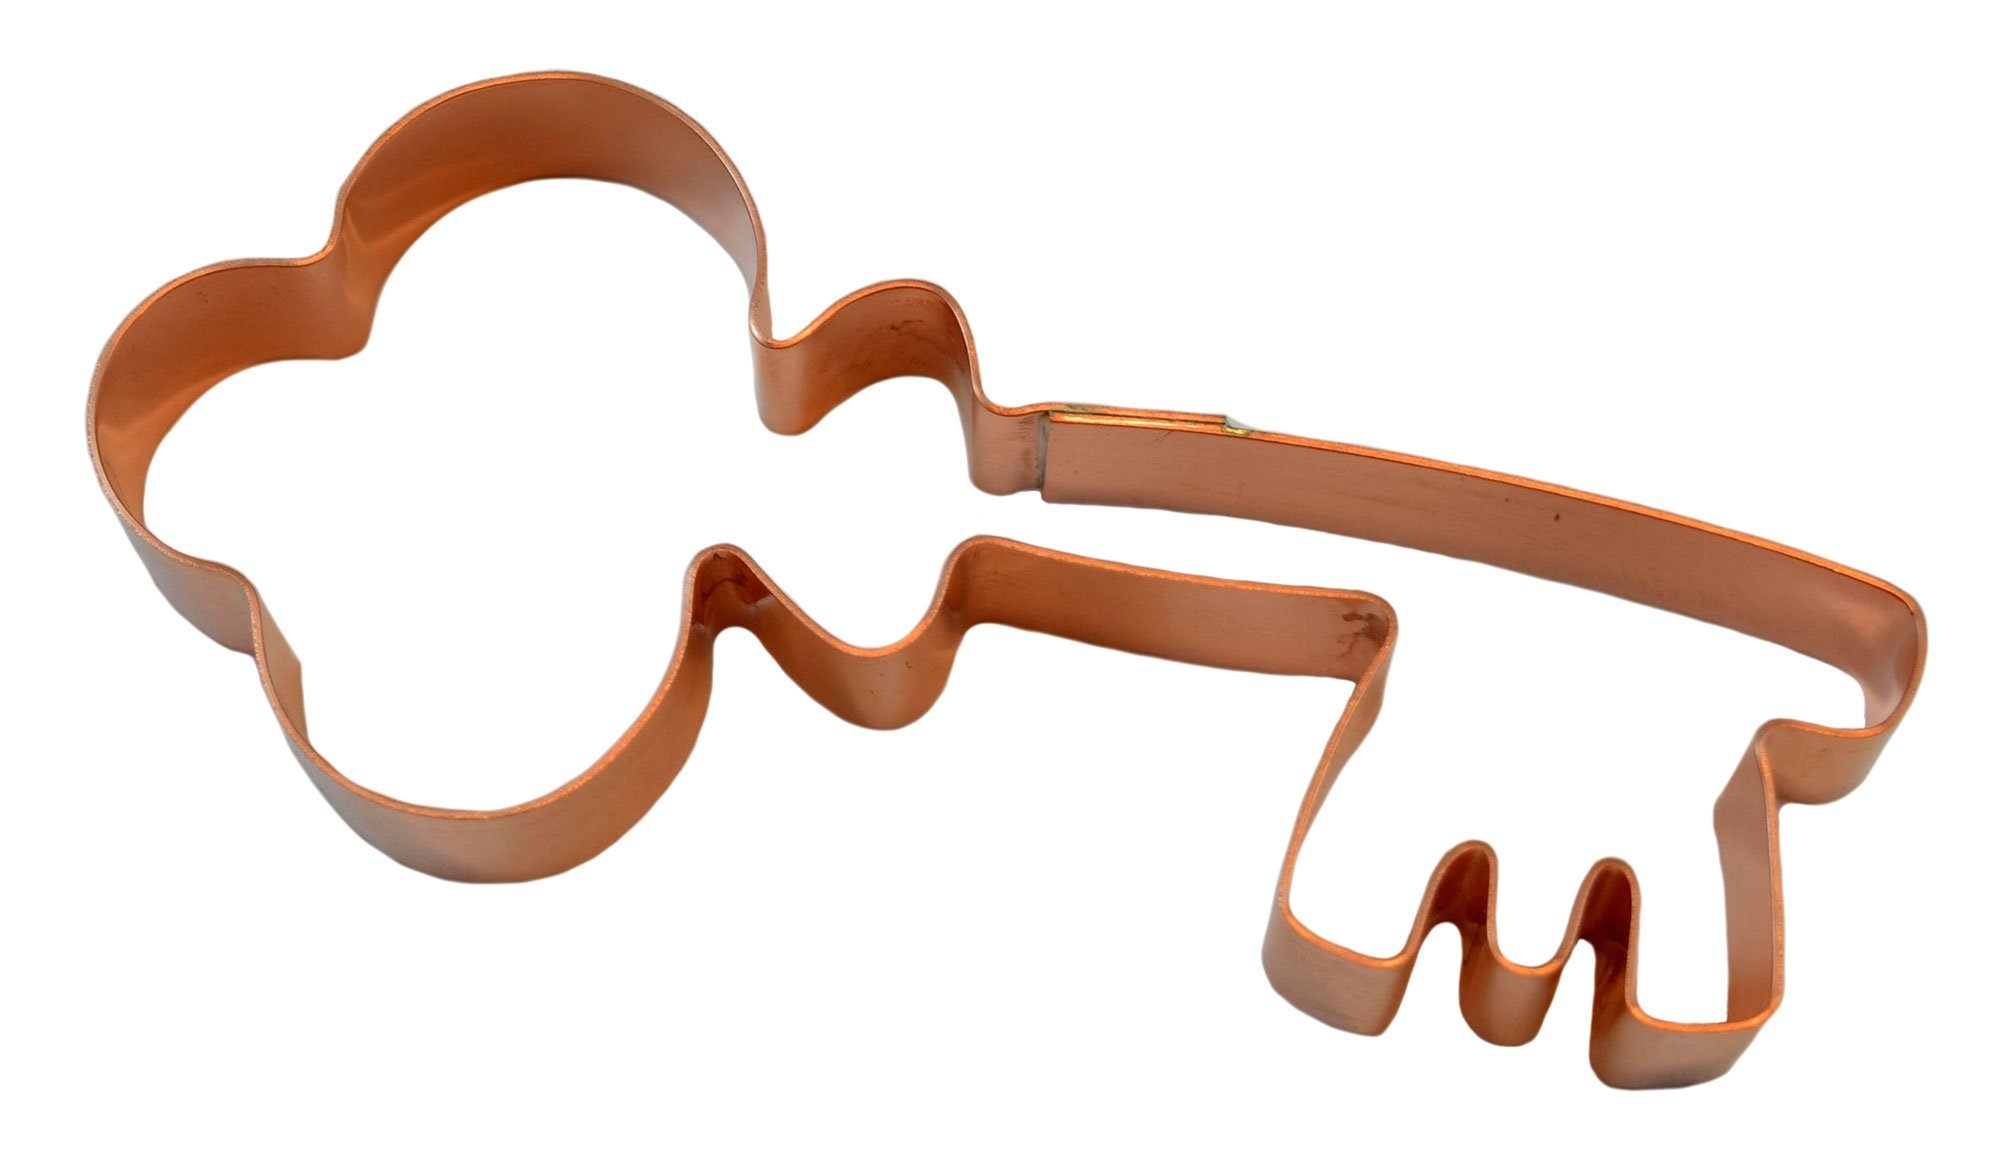 Fancy Old Fashioned Skeleton Key Copper Cookie Cutter